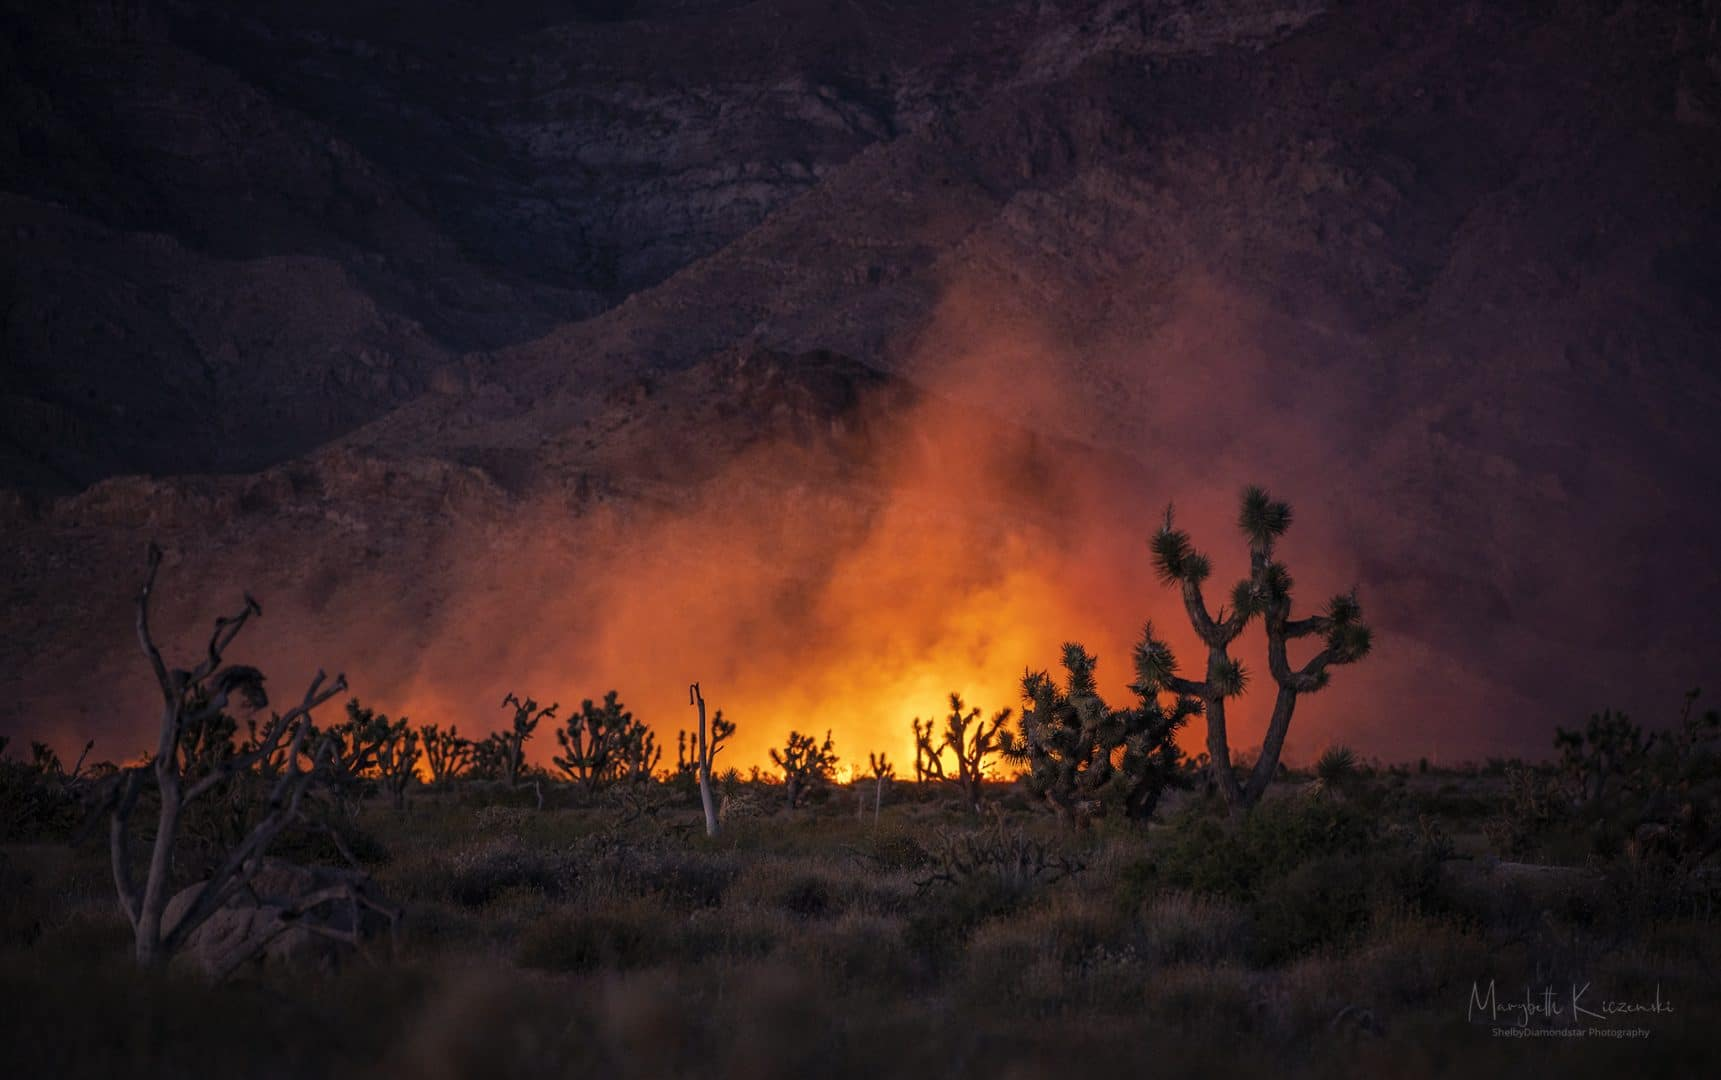 Joshua Trees under siege from flames.  Nikon Z6 - Nikkor 70-200mm. Copyright 2020 MaryBeth Kiczenski.